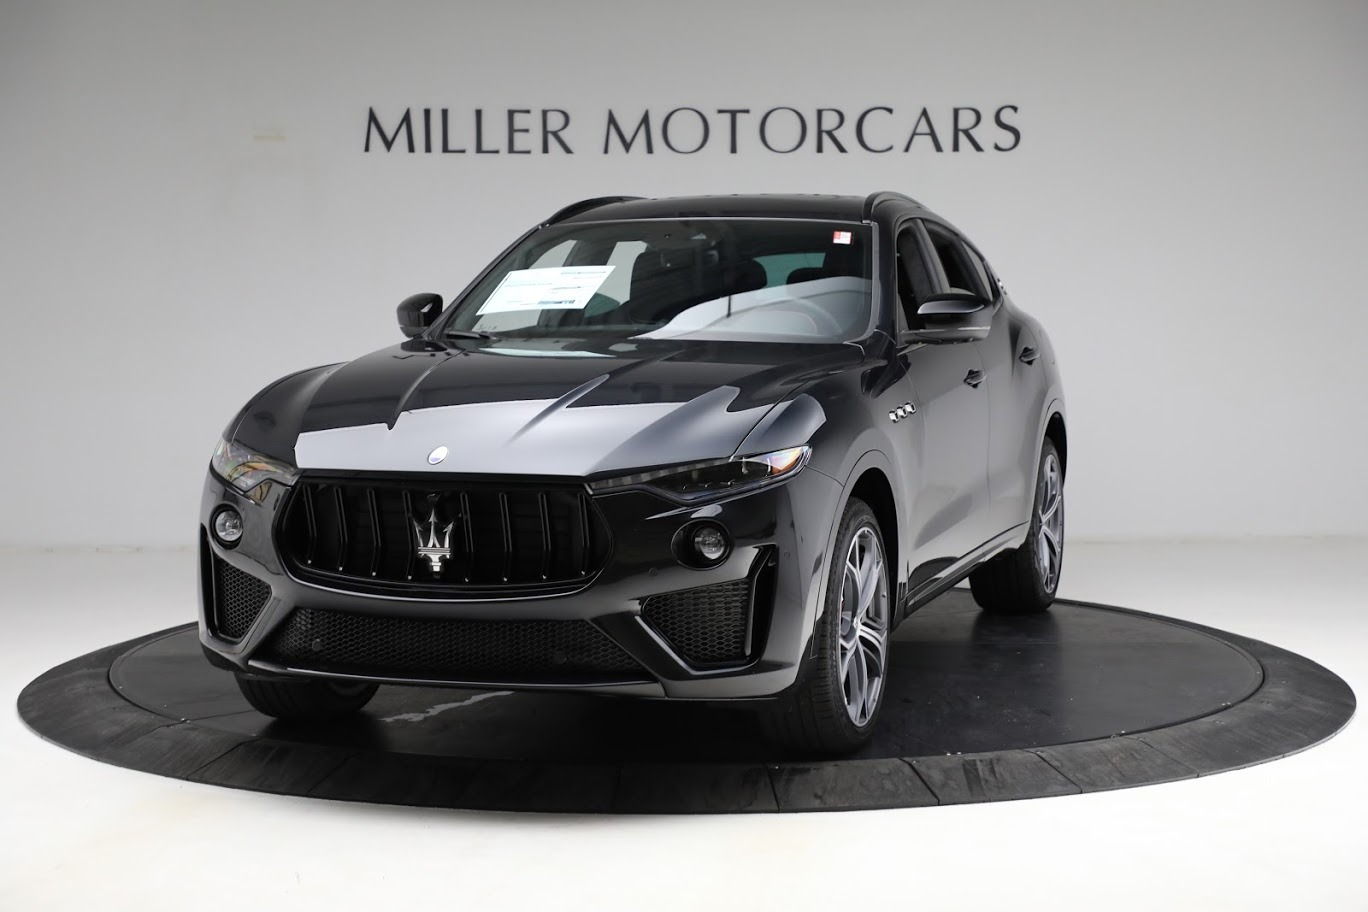 New 2021 Maserati Levante GTS for sale $138,385 at Rolls-Royce Motor Cars Greenwich in Greenwich CT 06830 1